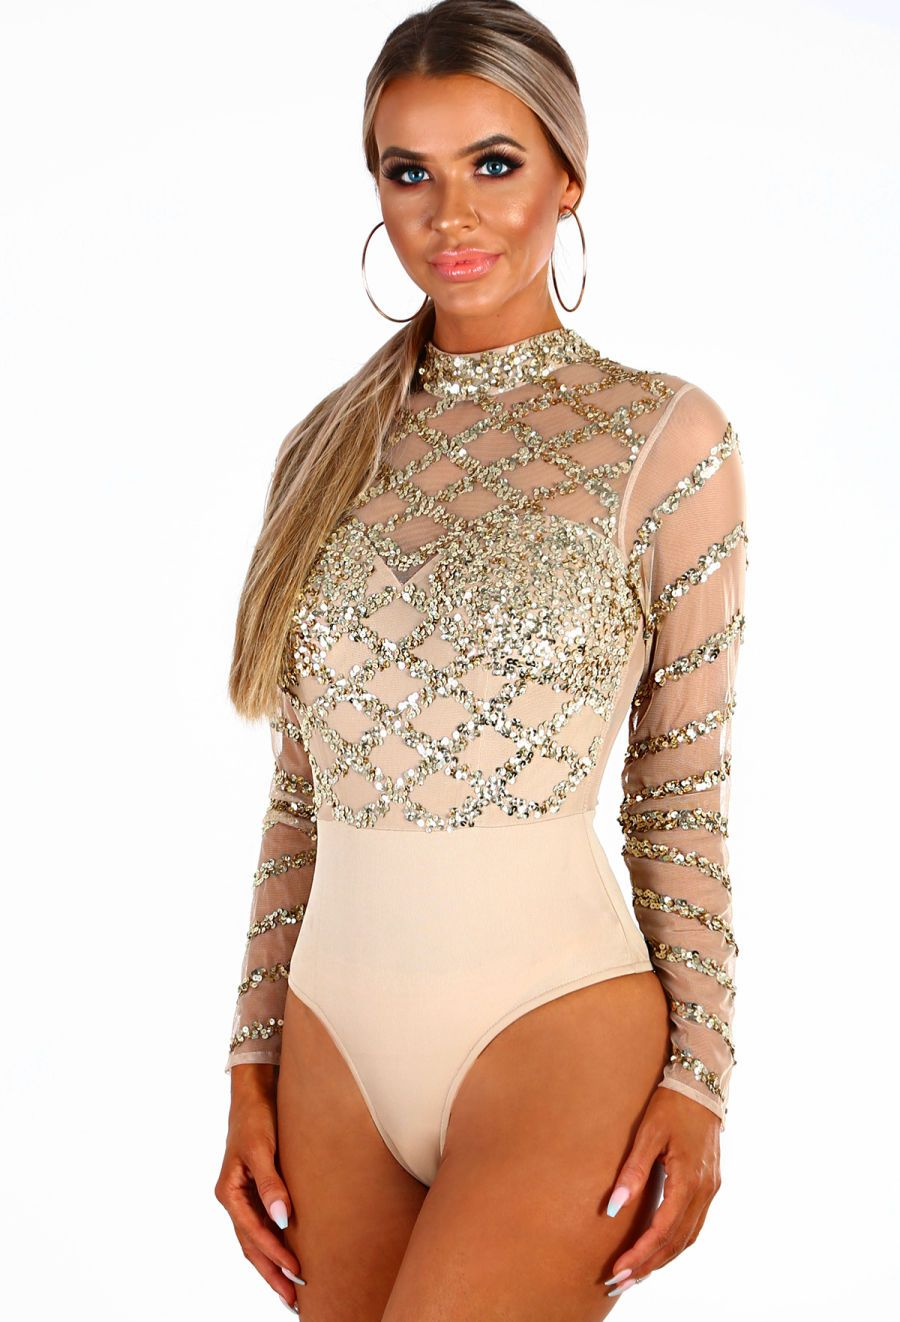 PREMIUM Diamonds Are Forever Nude Mesh Gold Sequin Embellished Bodysuit  ced48b11d